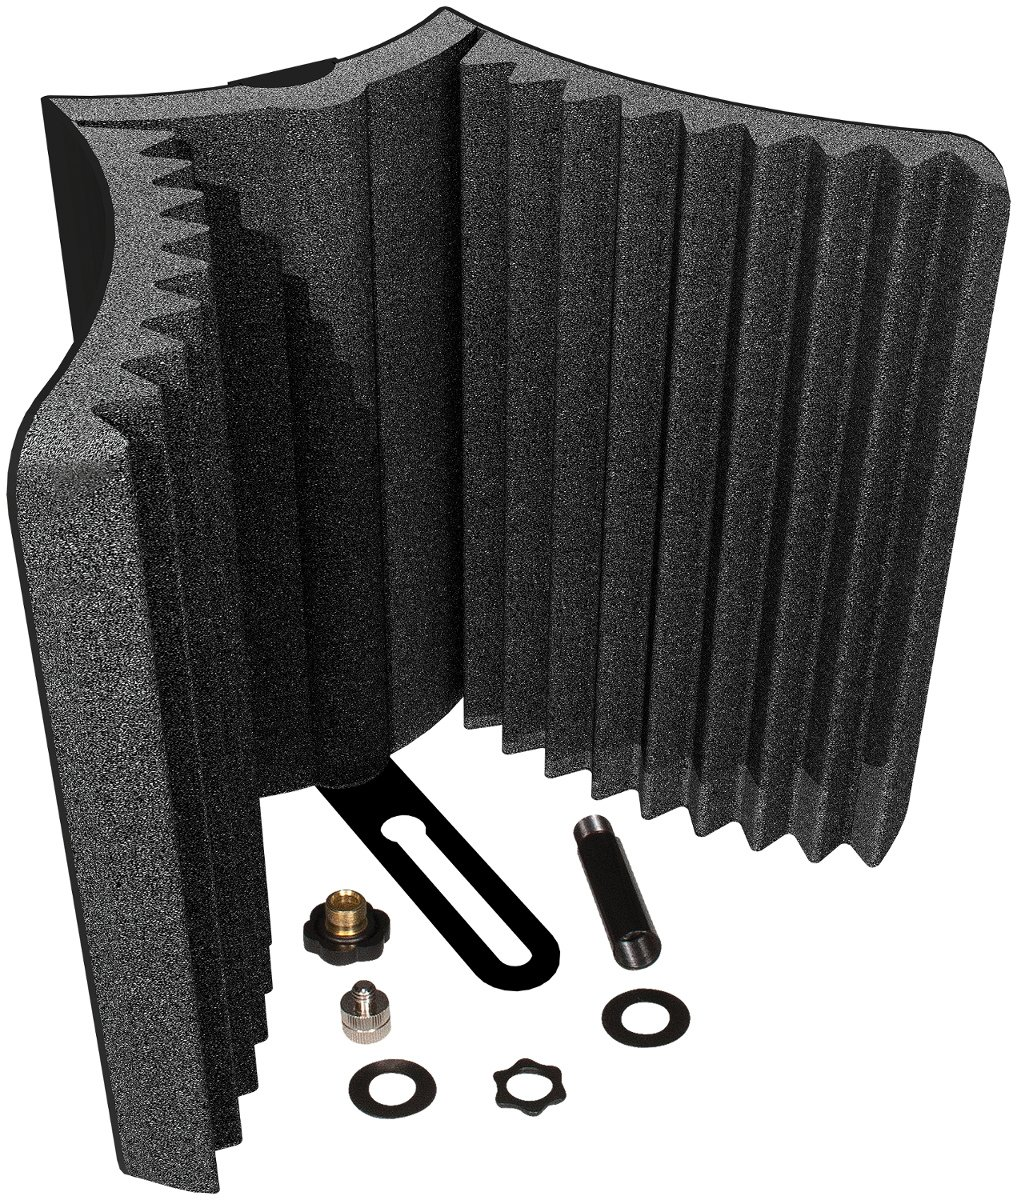 Microphone Shield with Hardware Mounting Kit